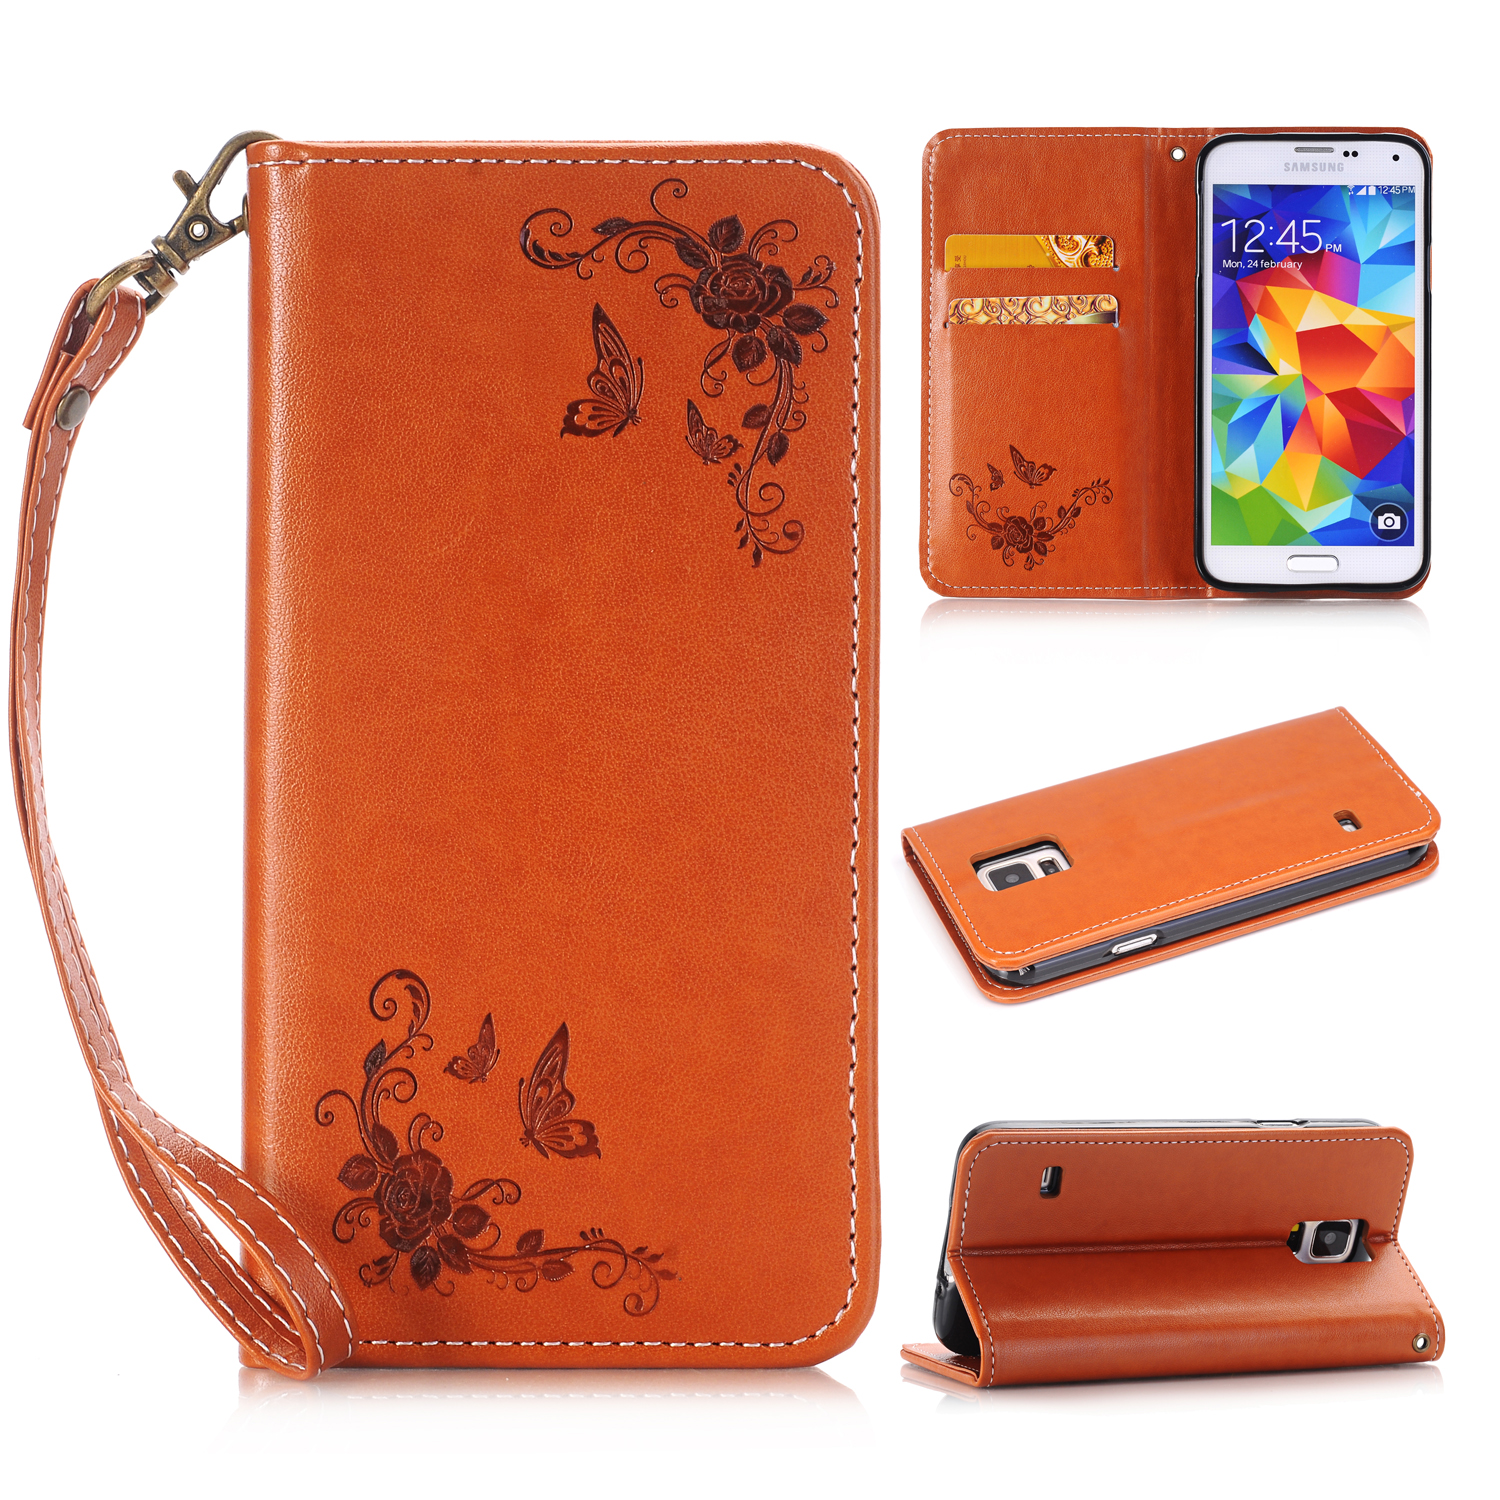 for <font><b>Samsung</b></font> Galaxy S5 Mini Case Luxury Embososed Wallet Cover Leather Flip Case Cover for <font><b>Samsung</b></font> Galaxy S5Mini G800 <font><b>G800F</b></font> G800H image